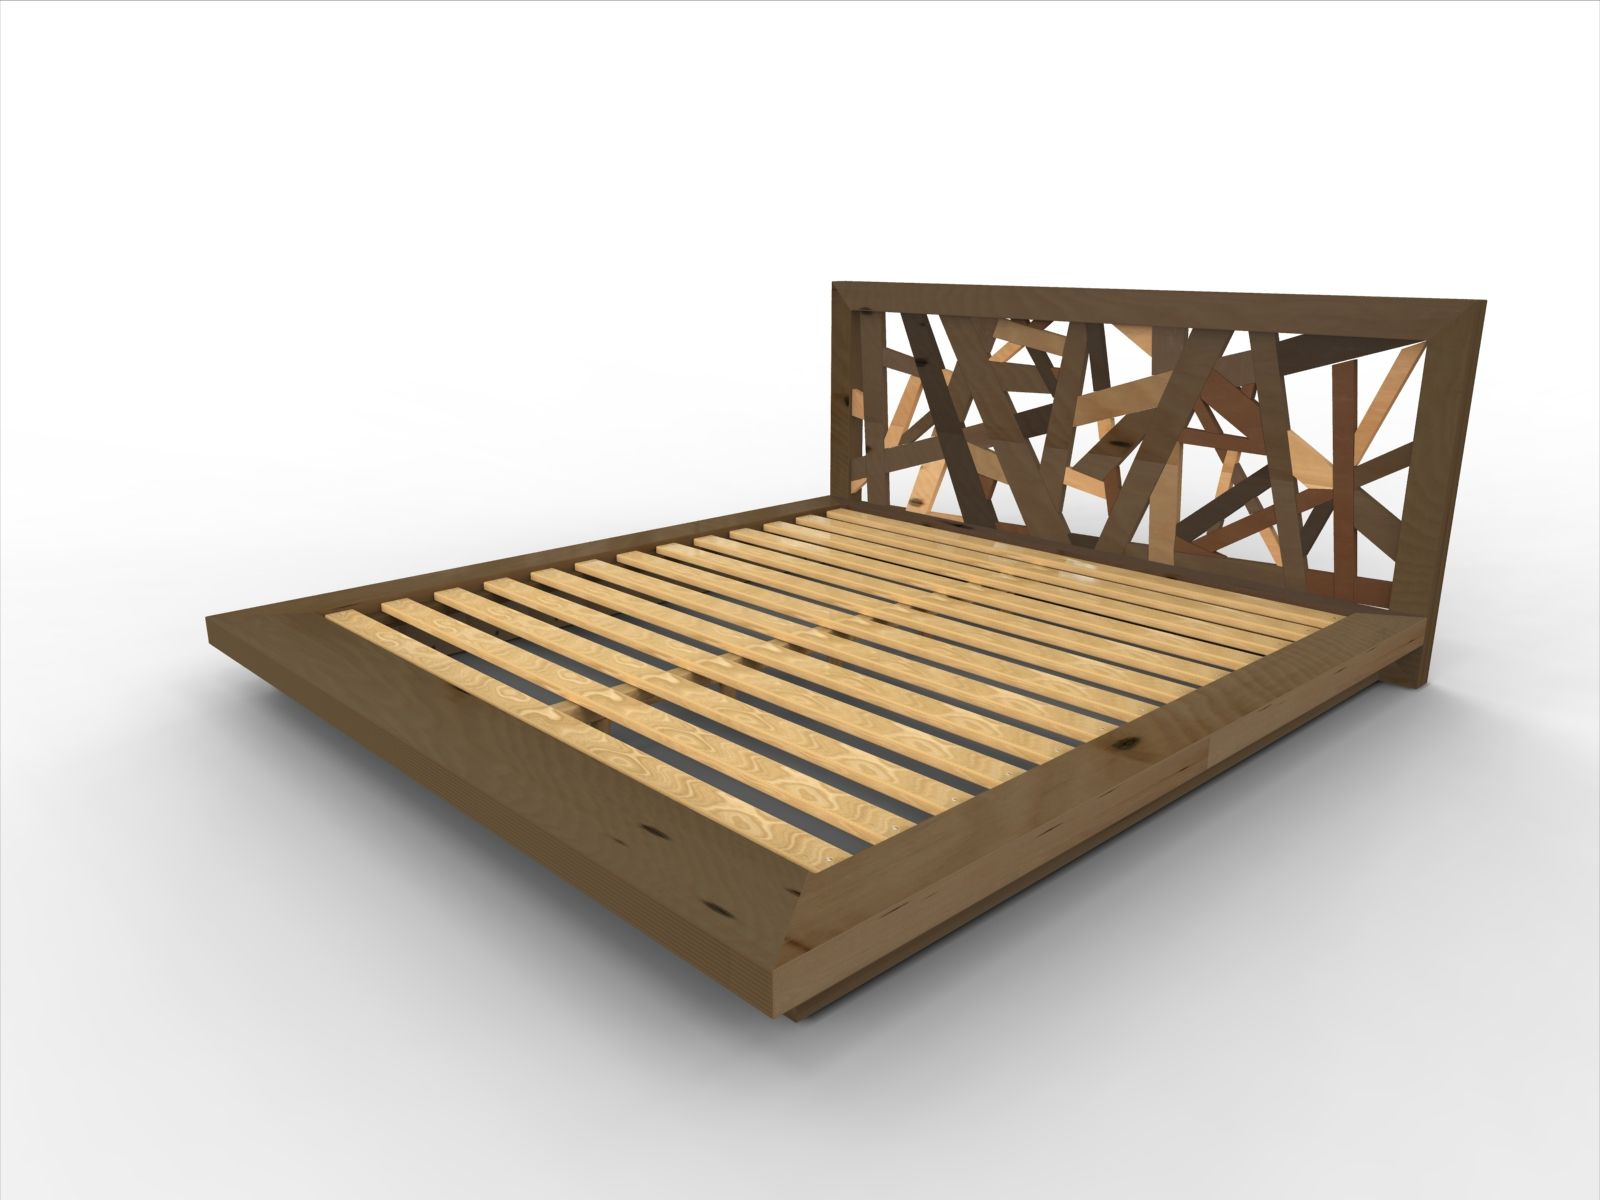 DIY Bed Frame with Storage The Lincoln Series Platform